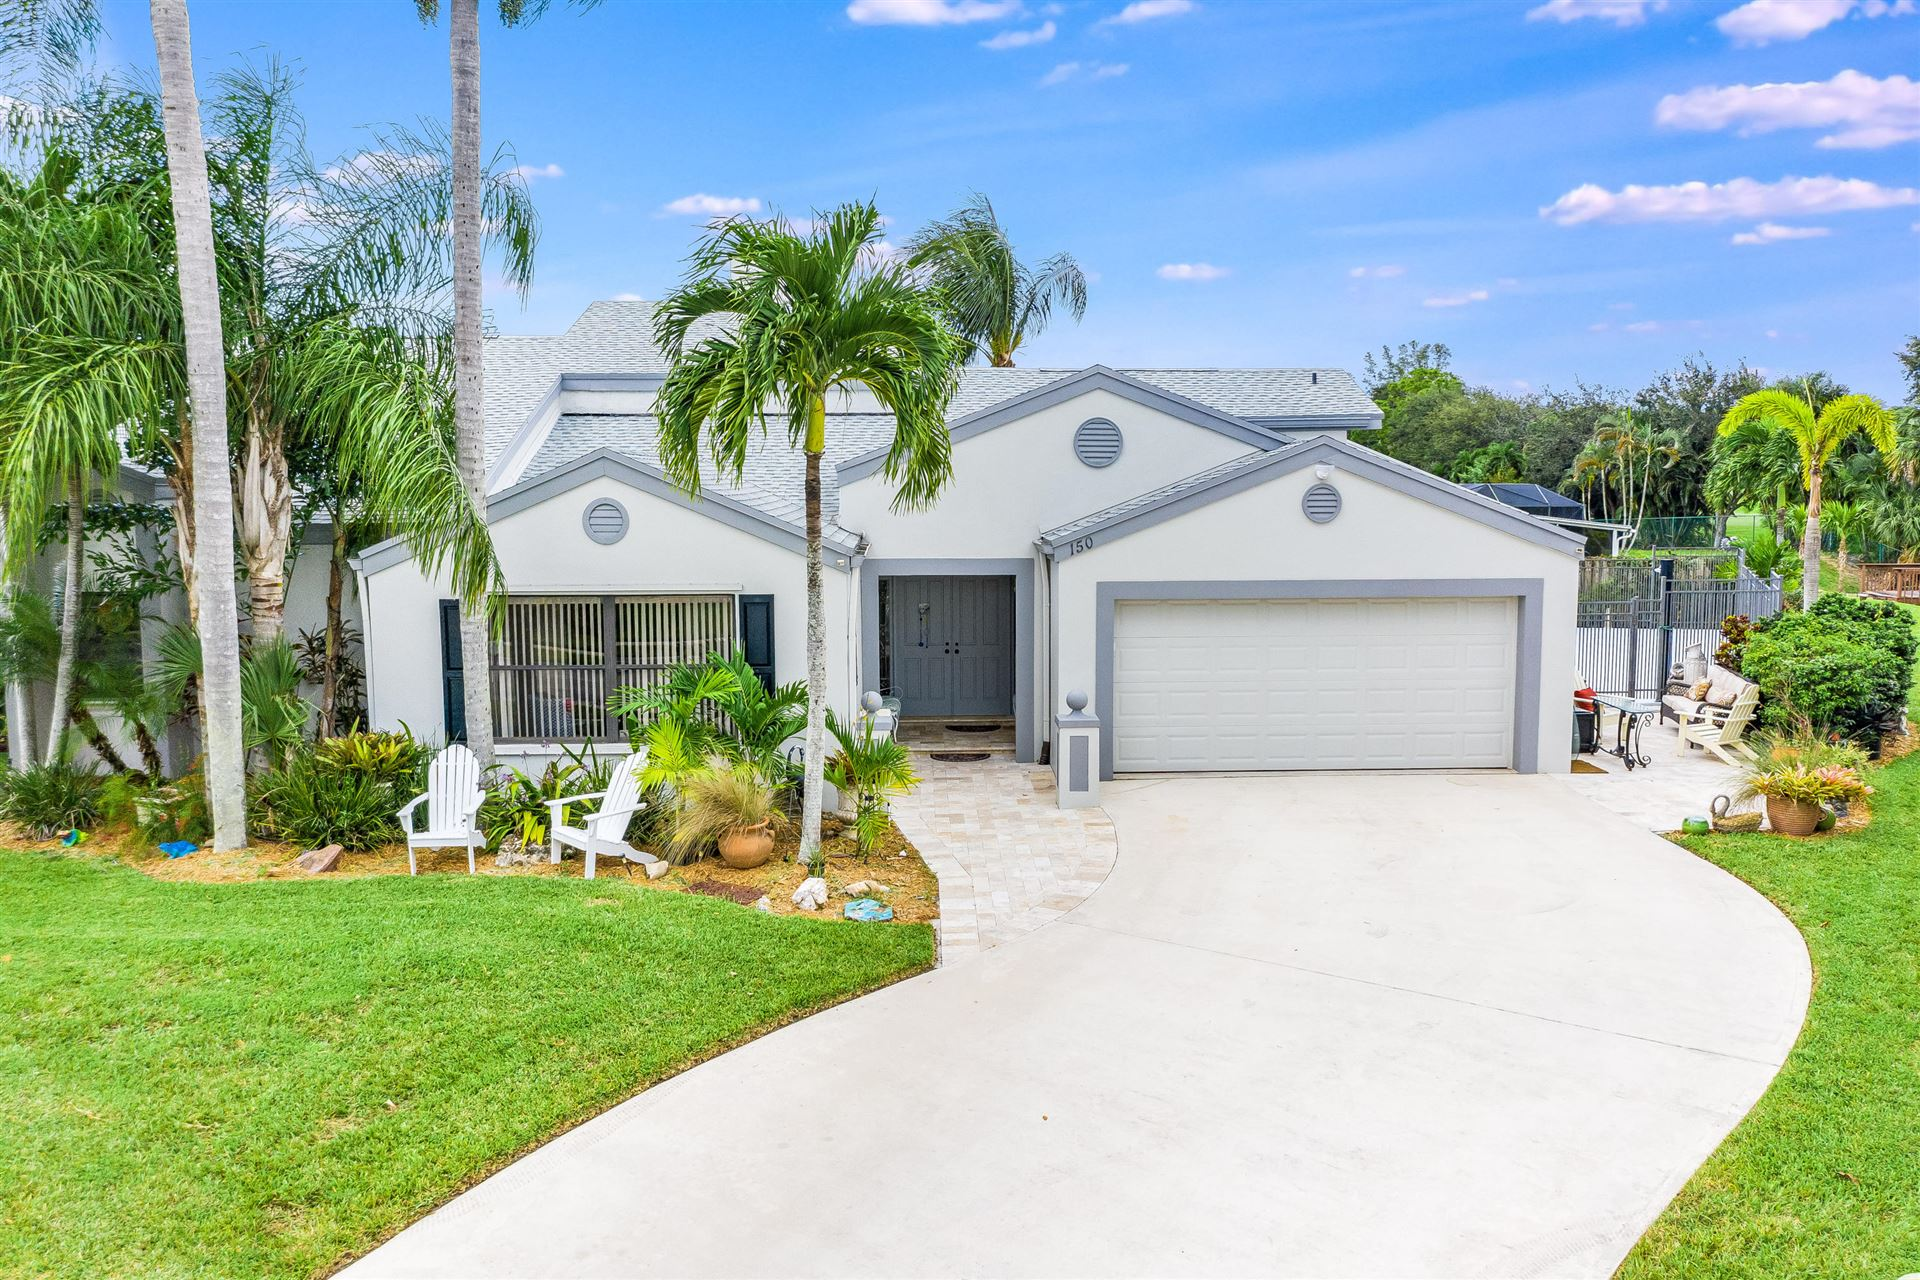 150 Elysium Drive, Royal Palm Beach, FL 33411 - #: RX-10663825